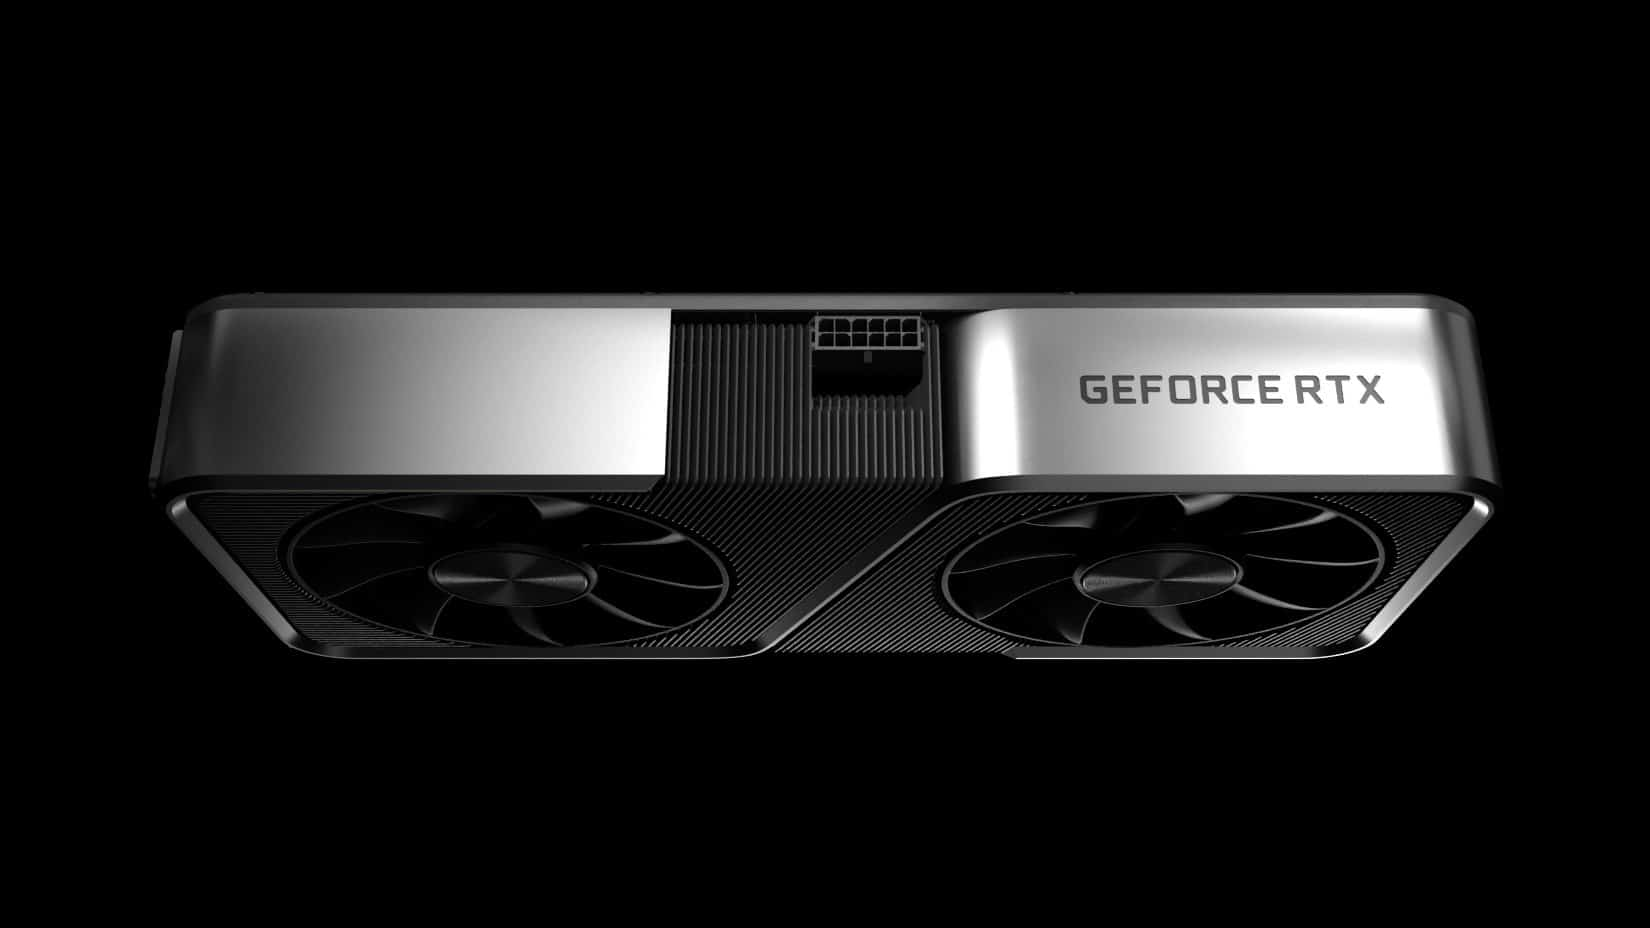 Leaked Benchmarks Show RTX 3070 is Equal to RTX 2080 Ti